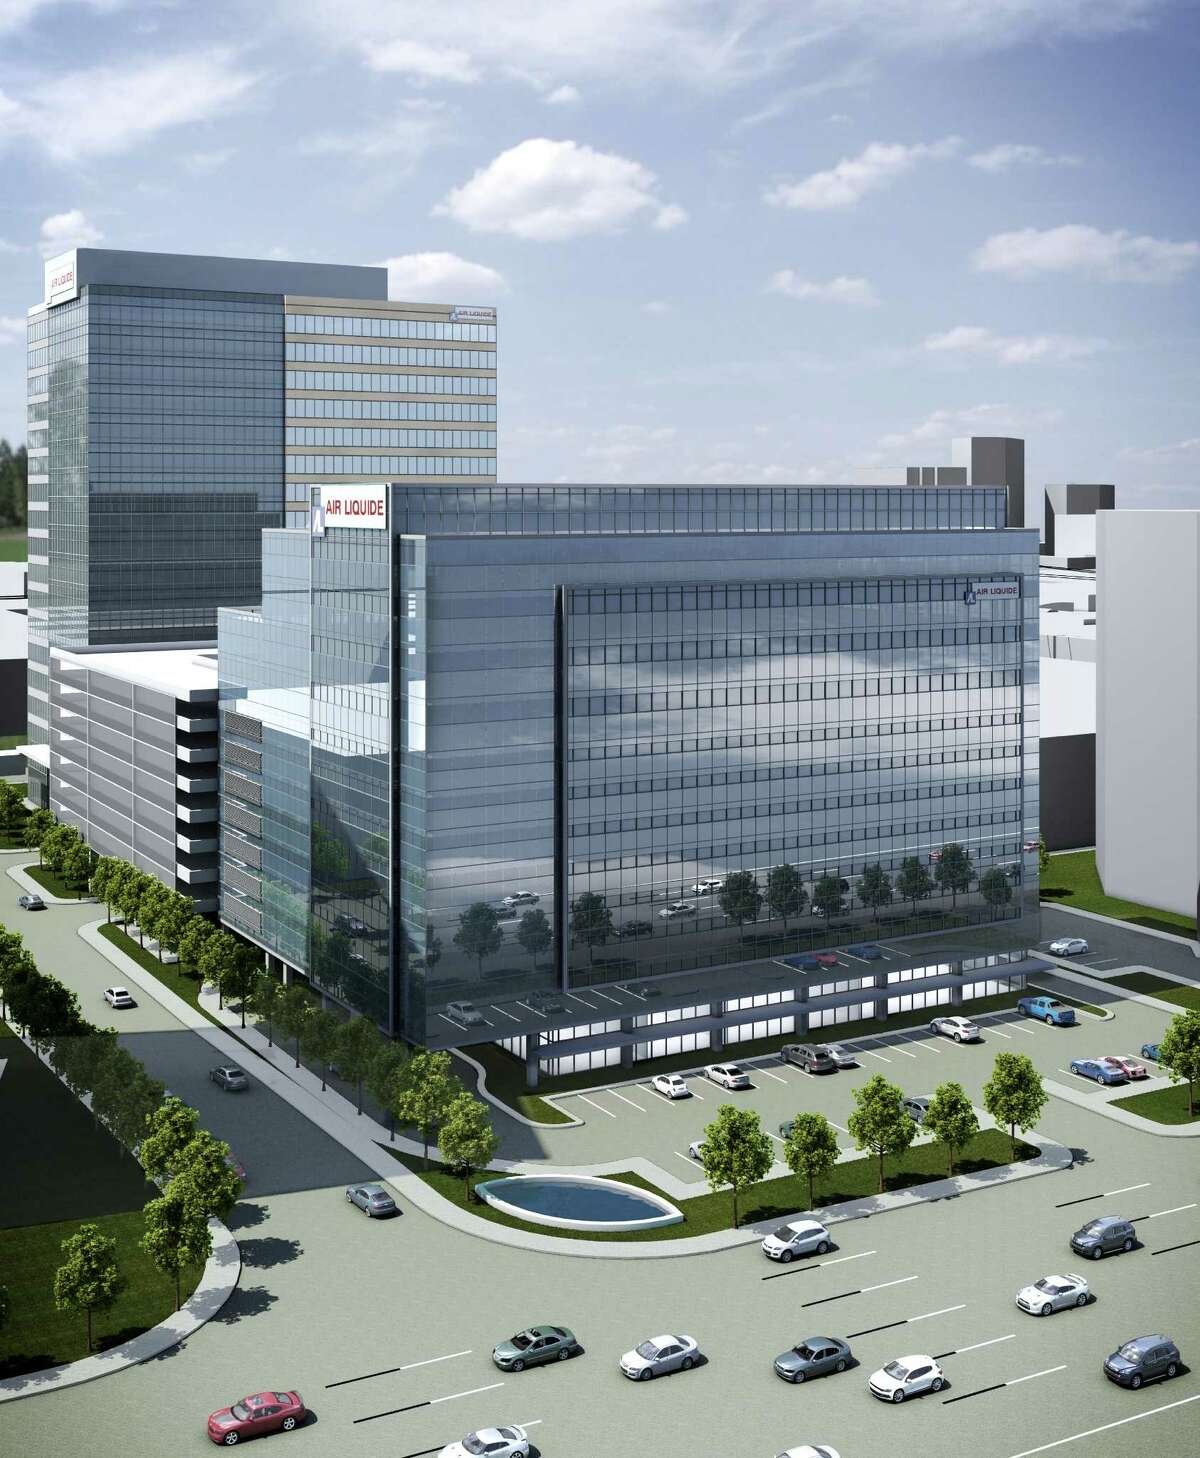 This rendering shows an office development at Memorial City that will house Air Liquide.